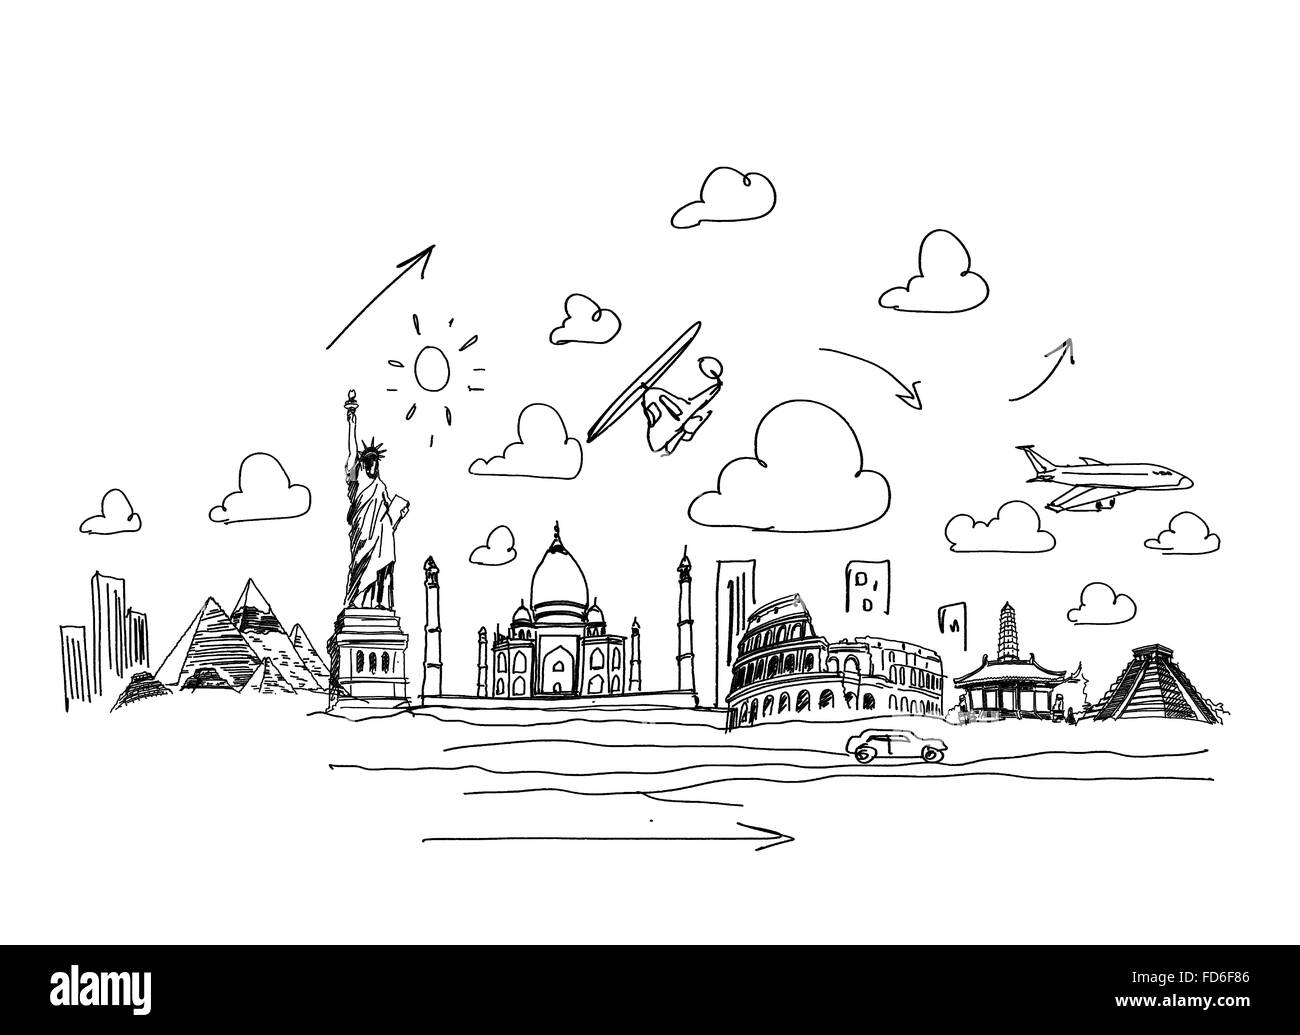 Background sketch image with drawings travel concept